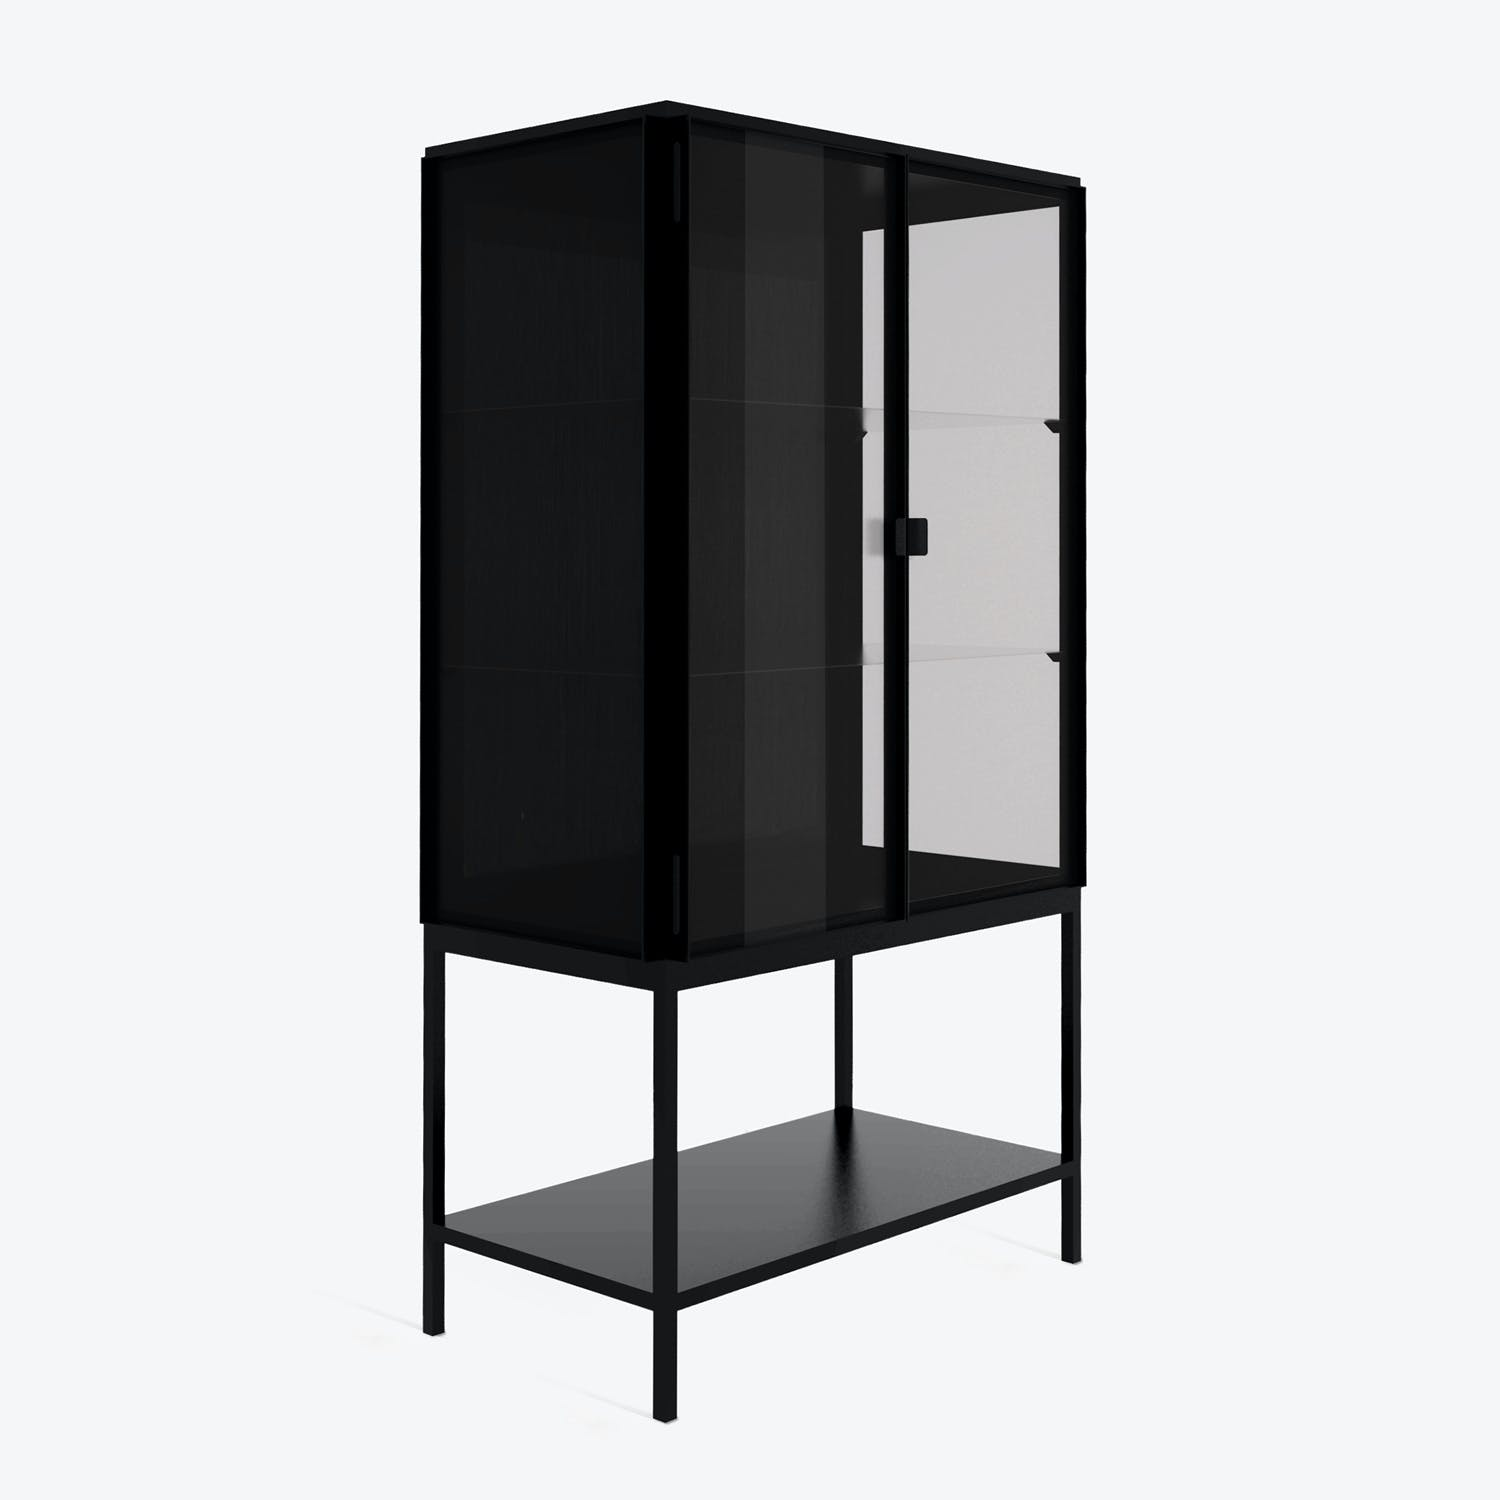 Ethnicraft Anders Cabinet Black